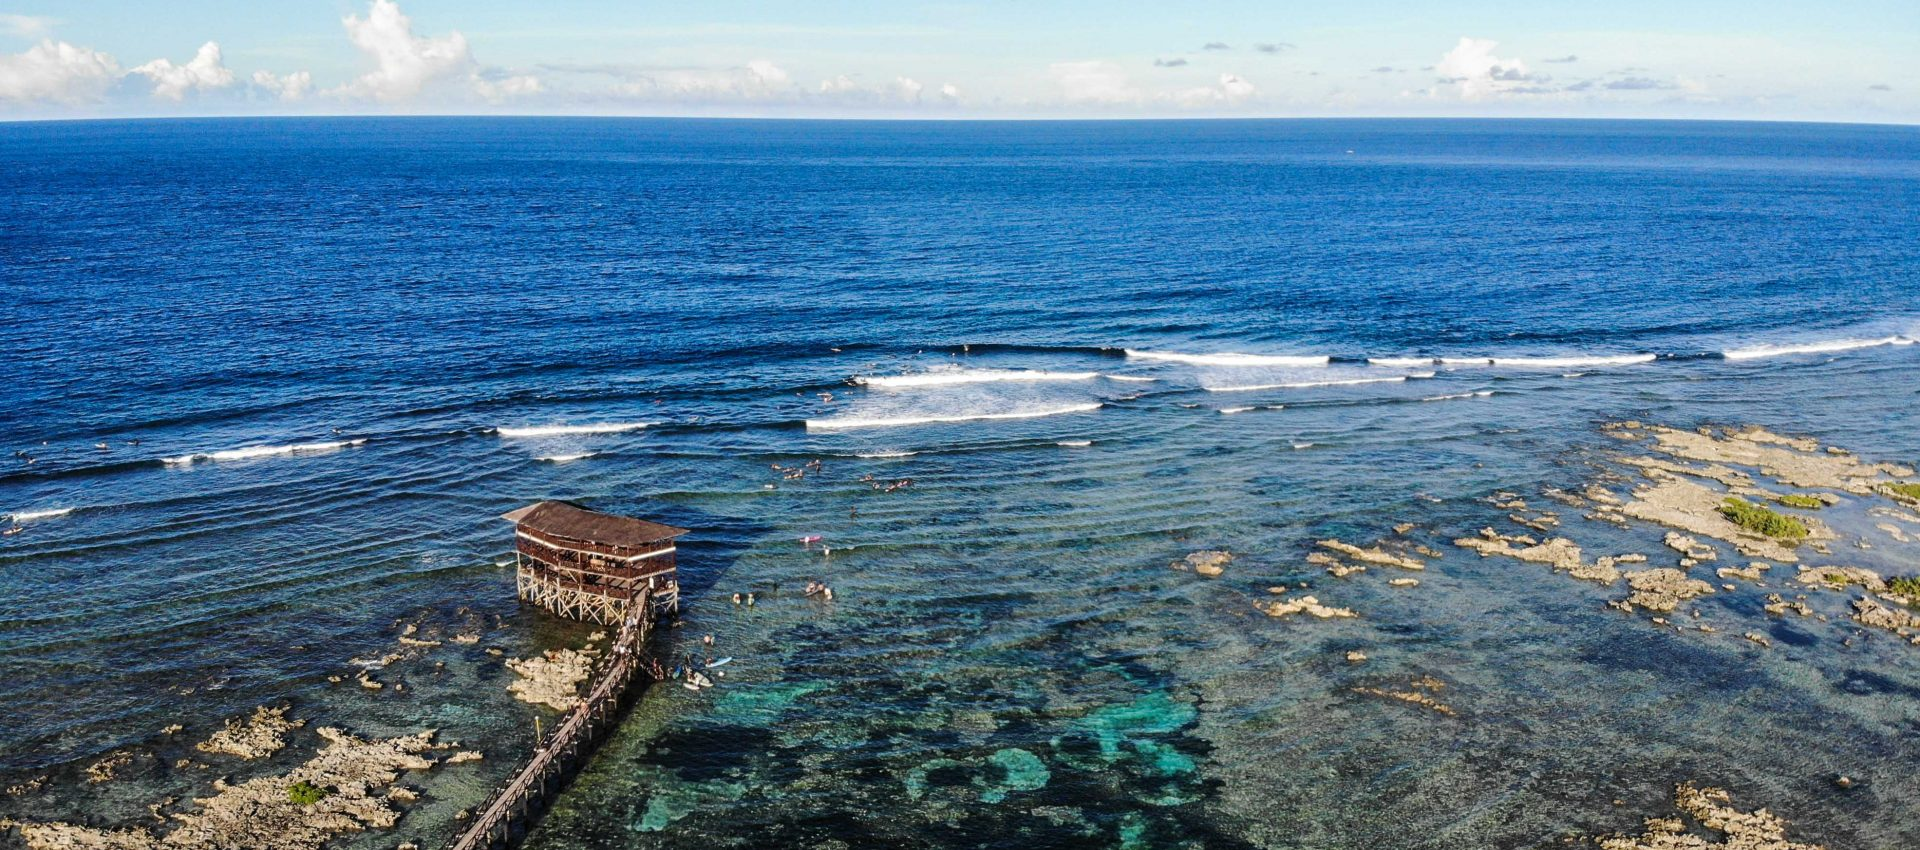 The famous Cloud 9 surf tower is the best spot to check out some professional surfing.